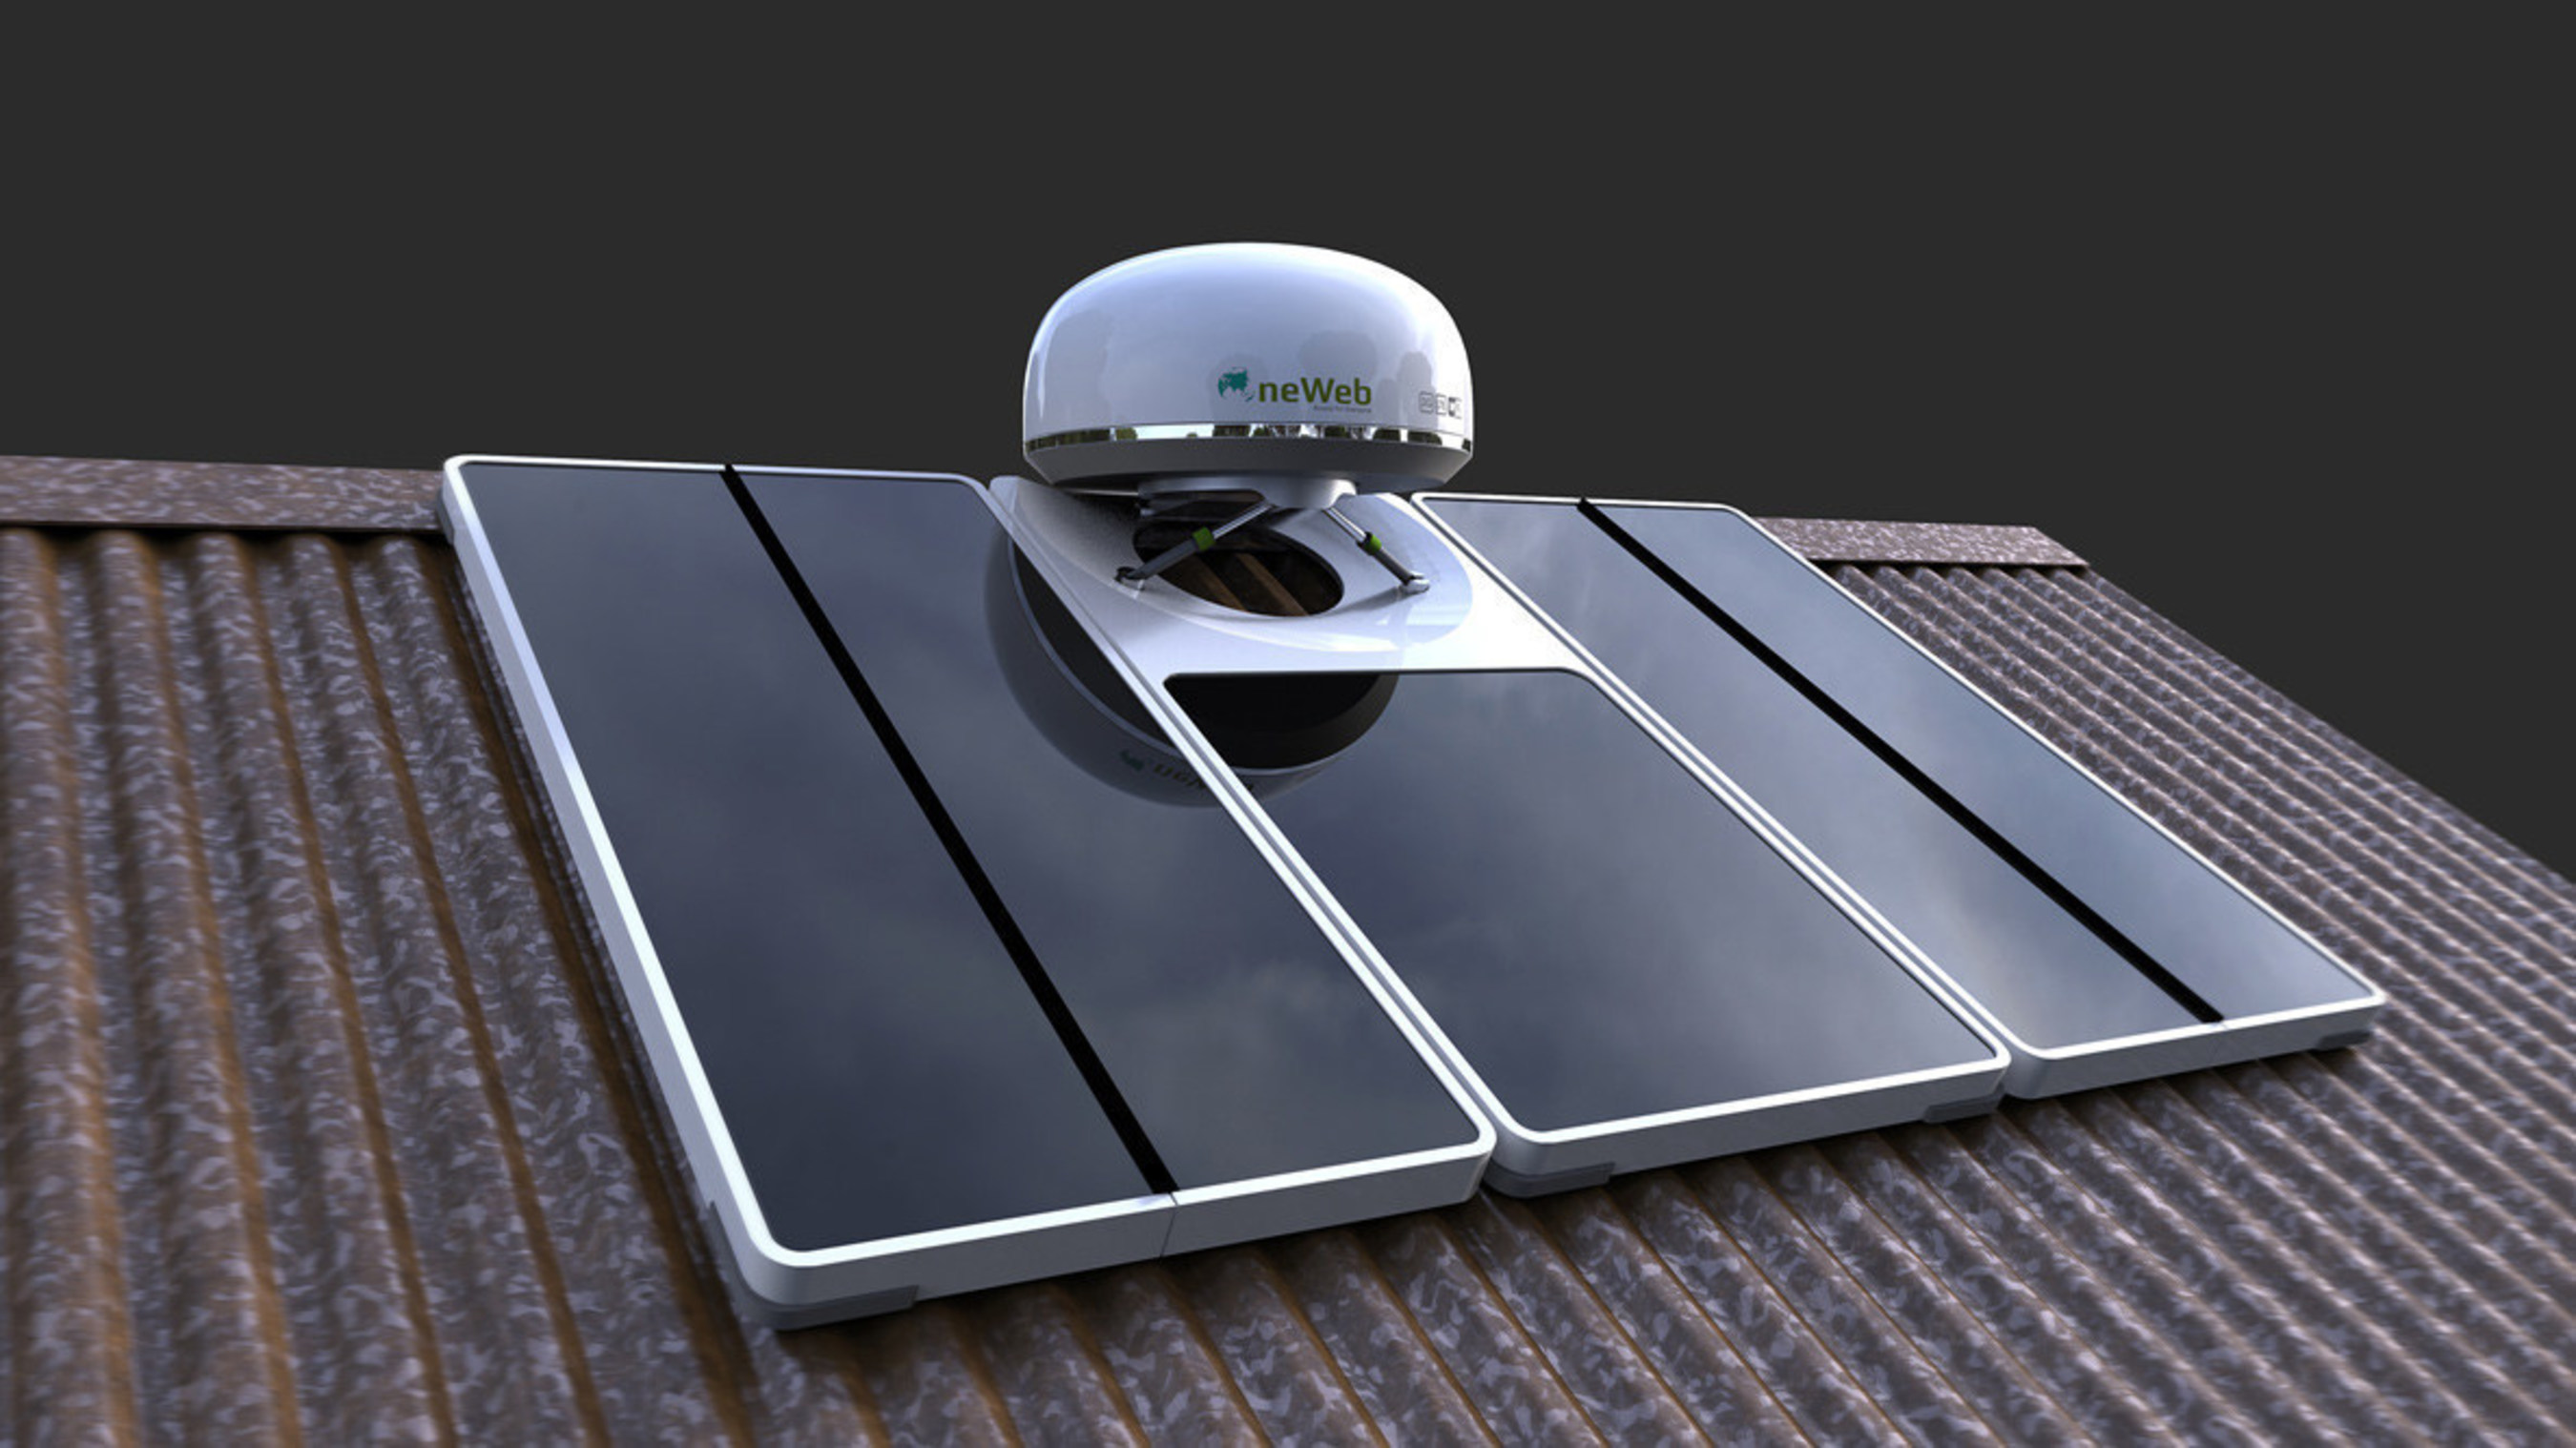 The OneWeb user terminal and solar array is designed to enable anyone, anywhere to connect easily to the internet. OneWeb's mission is to connect the 56 percent of the globe that currently has no access to the Internet. The industrial design, created by Design Concepts, Inc., recently won an International Design Excellence Award (IDEA) from the Industrial Design Society of America (IDSA) in the social impact category.